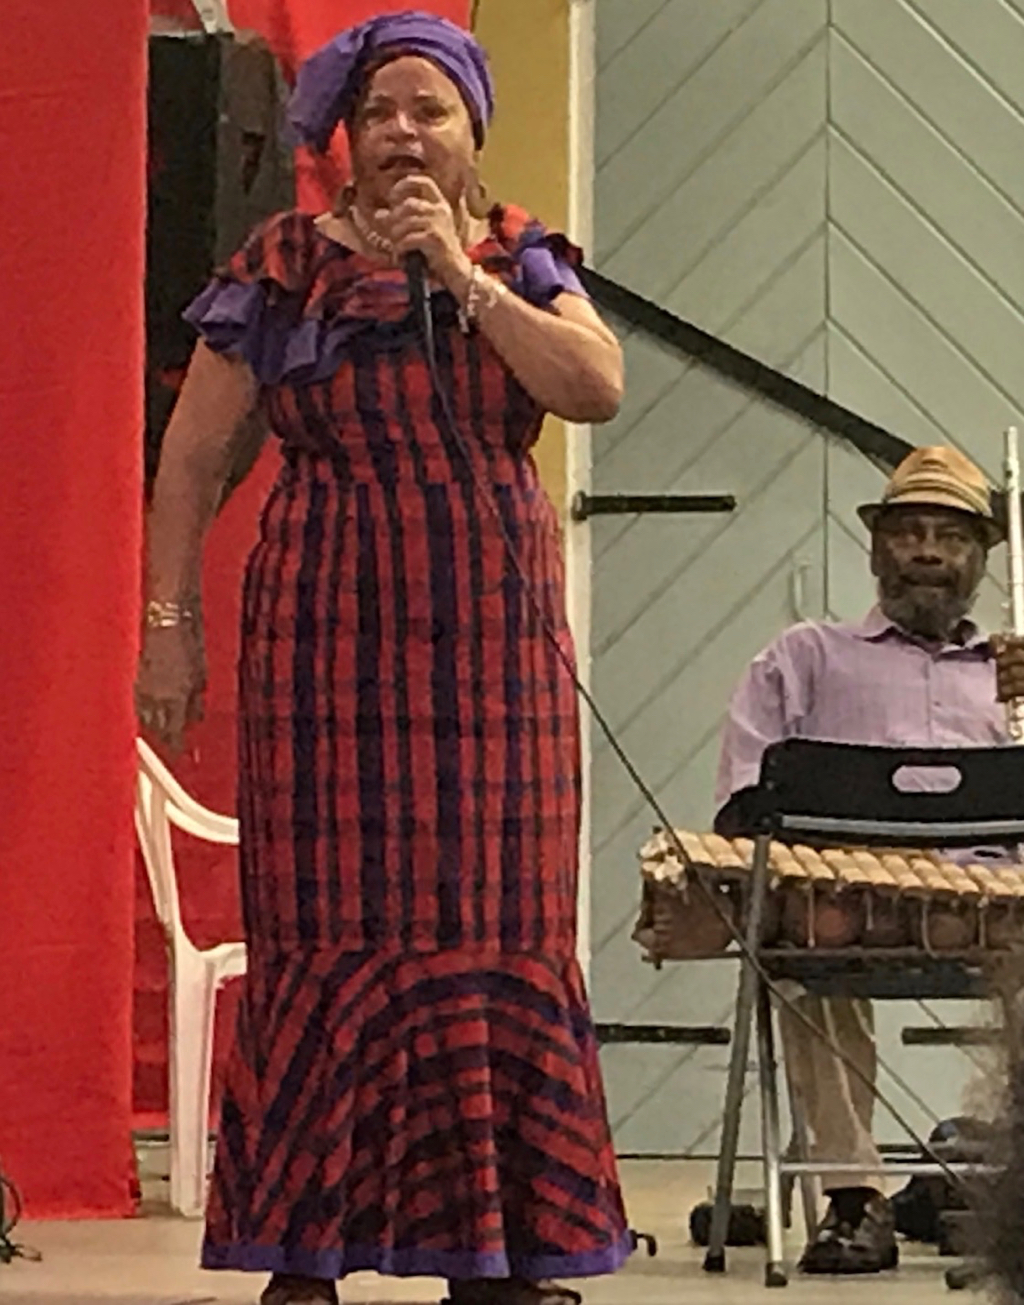 Cedelle Petersen Christopher, who learned Cariso from Leona Watson, performs 'Clear de Road' and 'Sly Mongoose.' Christopher is a retired educator who performs Cariso and storytelling and makes puppetry for school children. (Source photo by Elisa McKay)